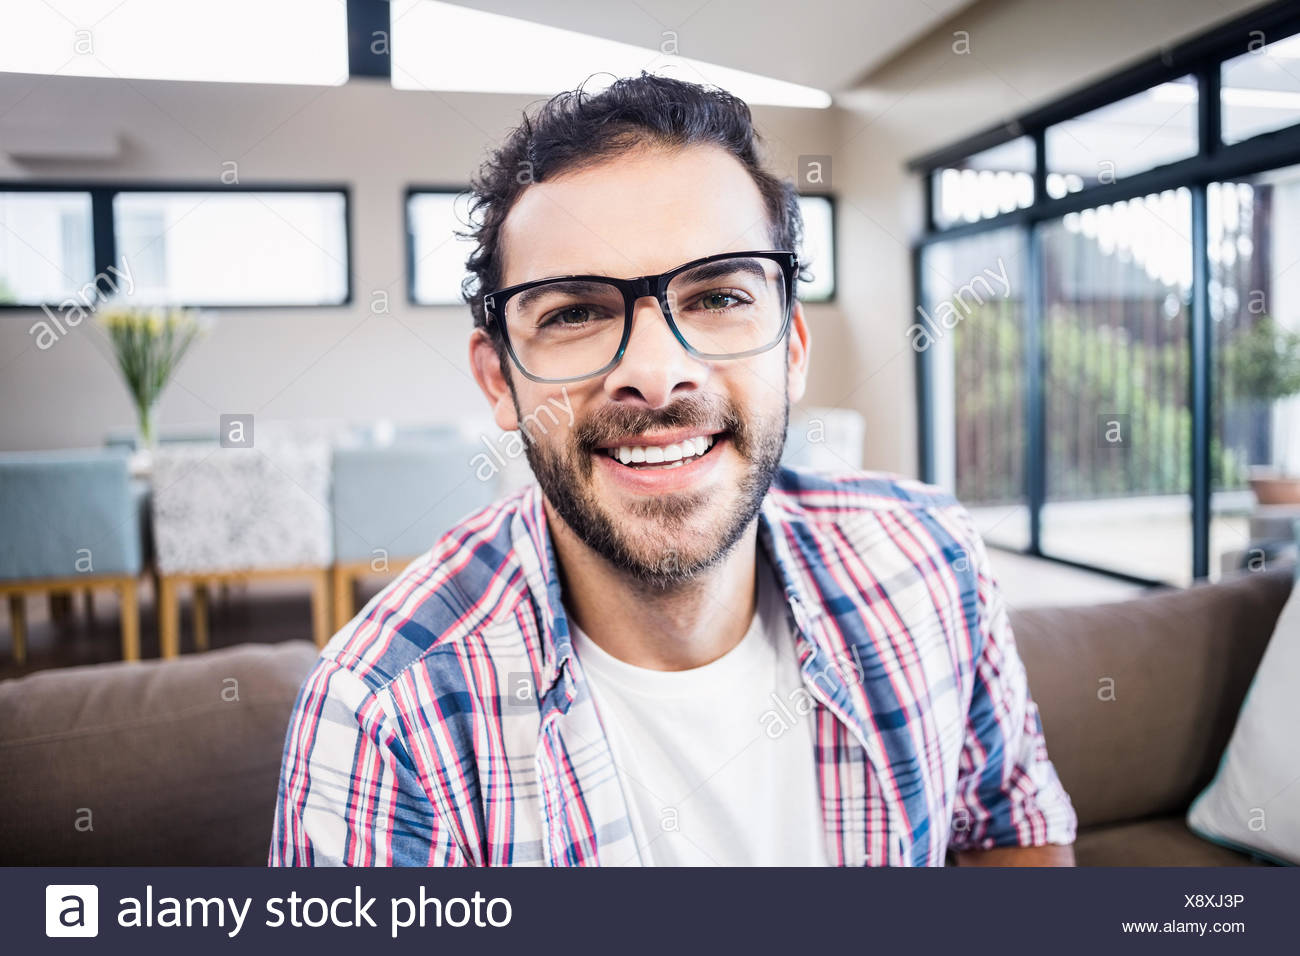 Handsome man smiling at the camera Photo Stock